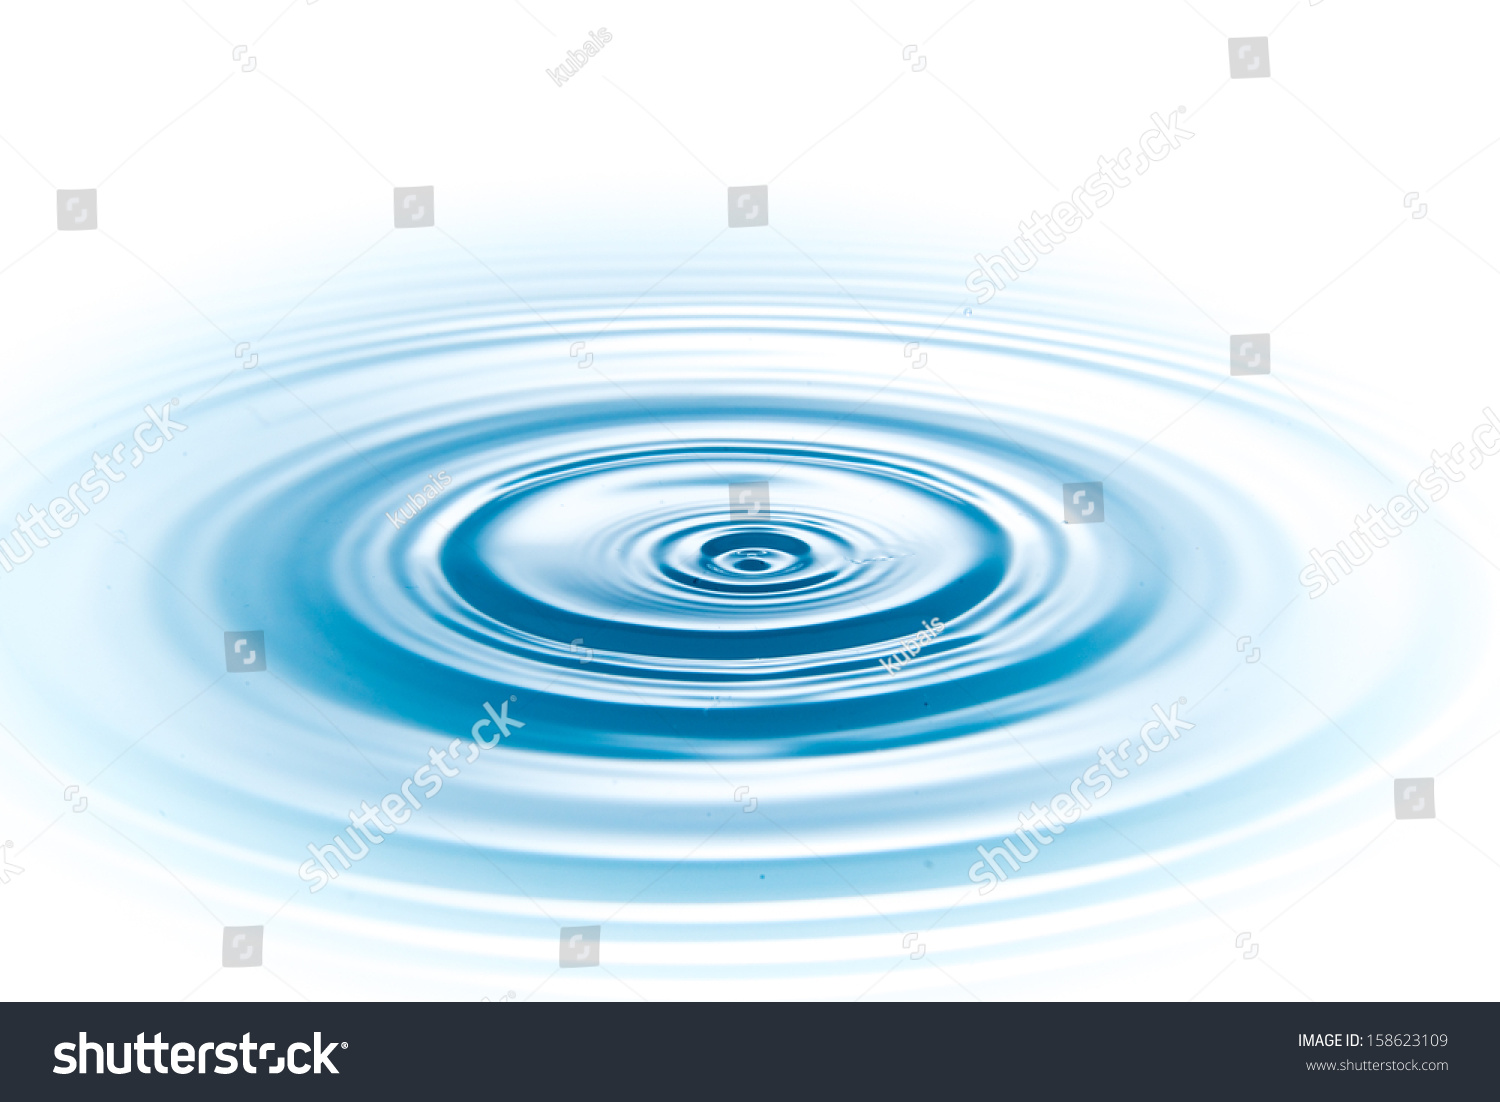 Drop Of Water On White Background Stock Photo 158623109 ...